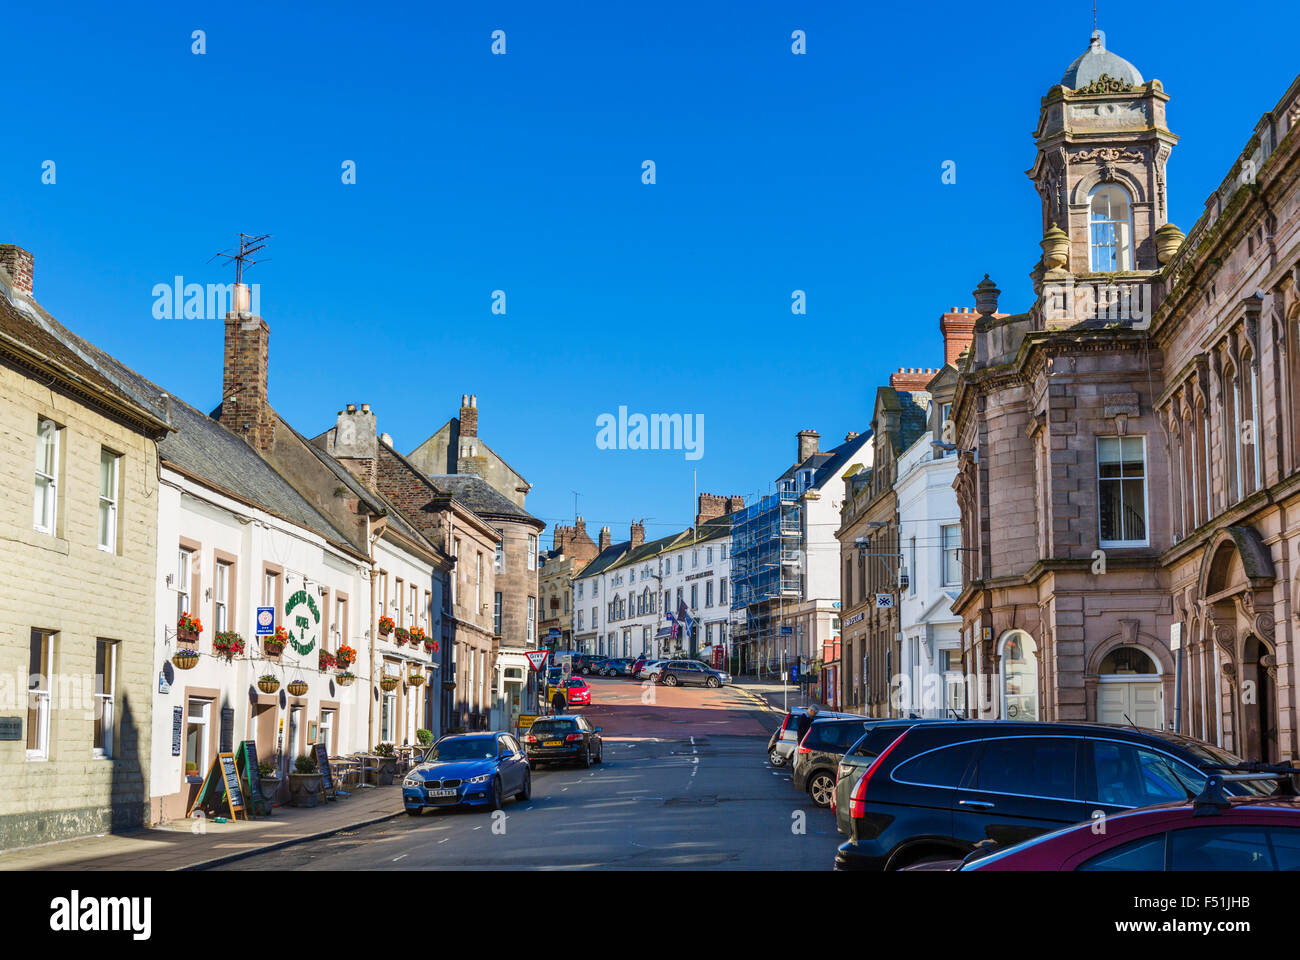 View up Sandgate in the town centre, Berwick-upon-Tweed, Northumberland, England, UK - Stock Image